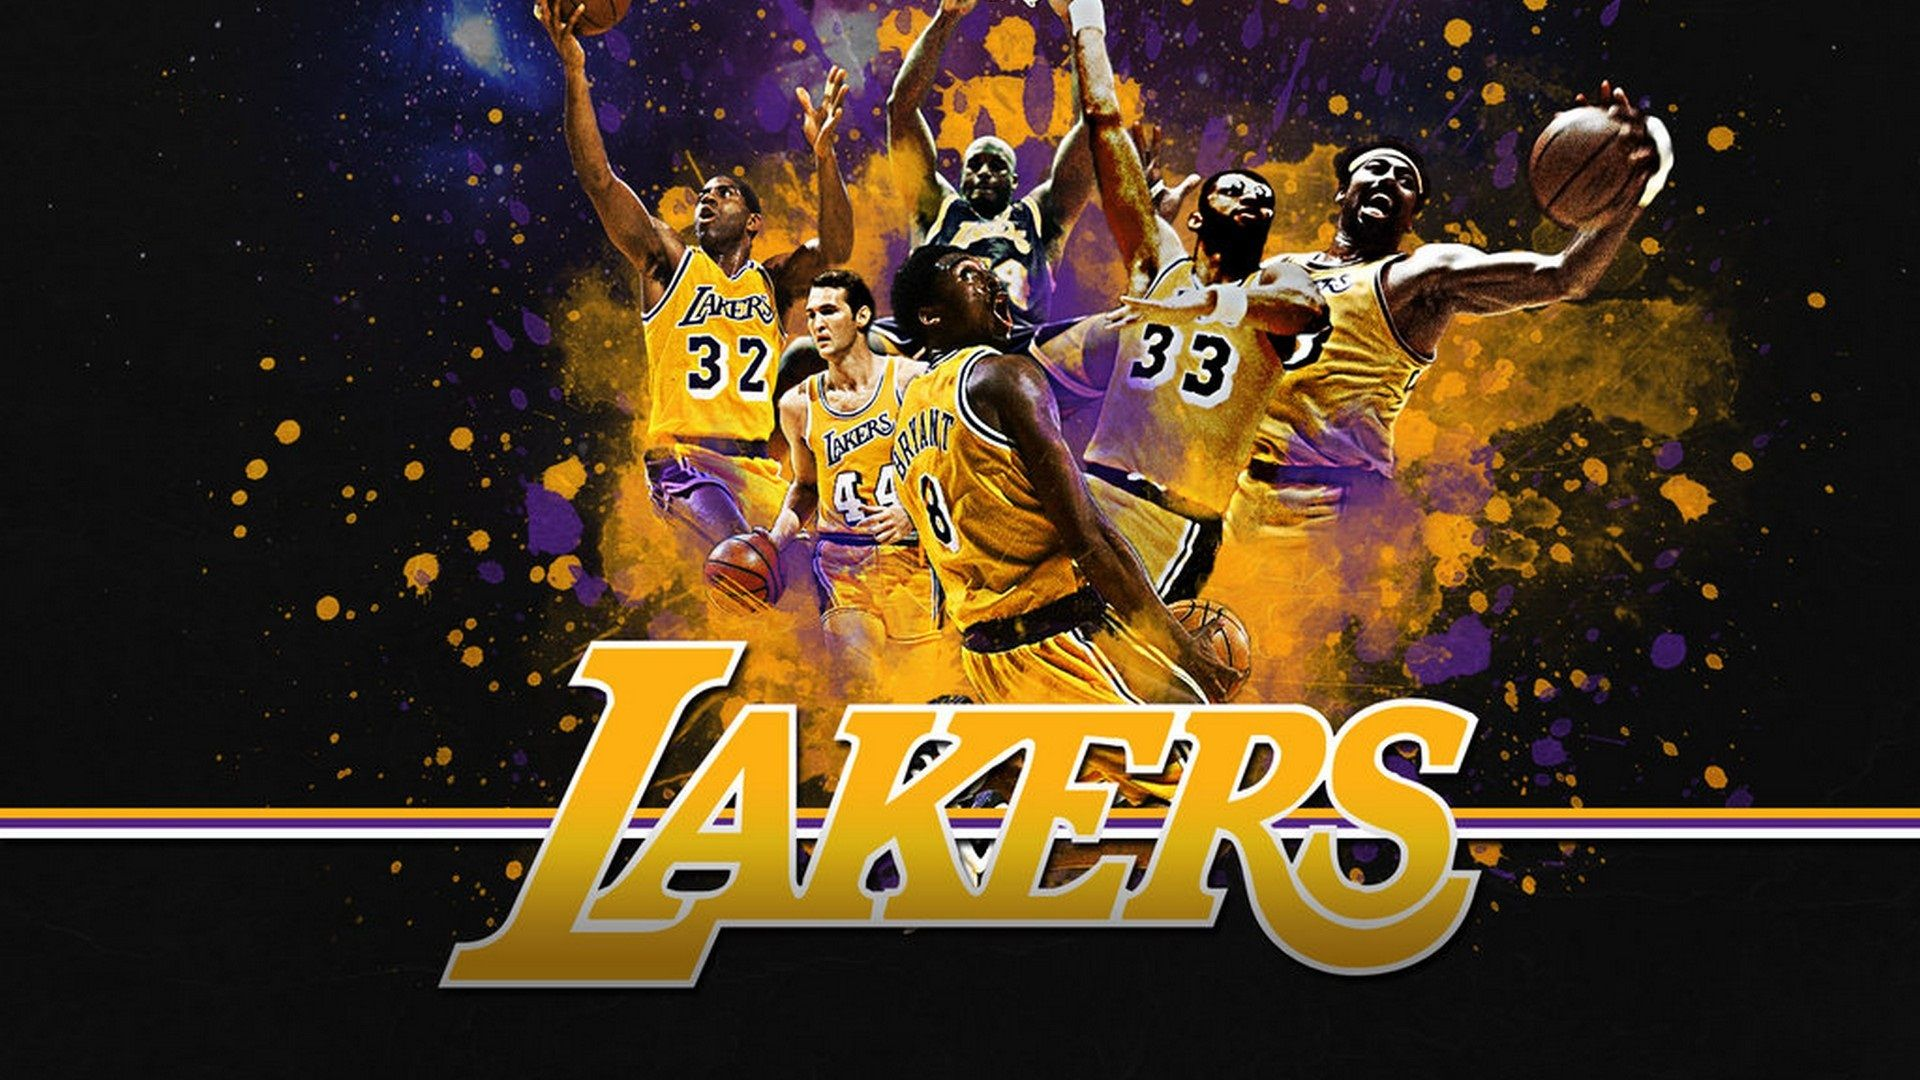 Lakers Computer Wallpapers Top Free Lakers Computer Backgrounds Wallpaperaccess